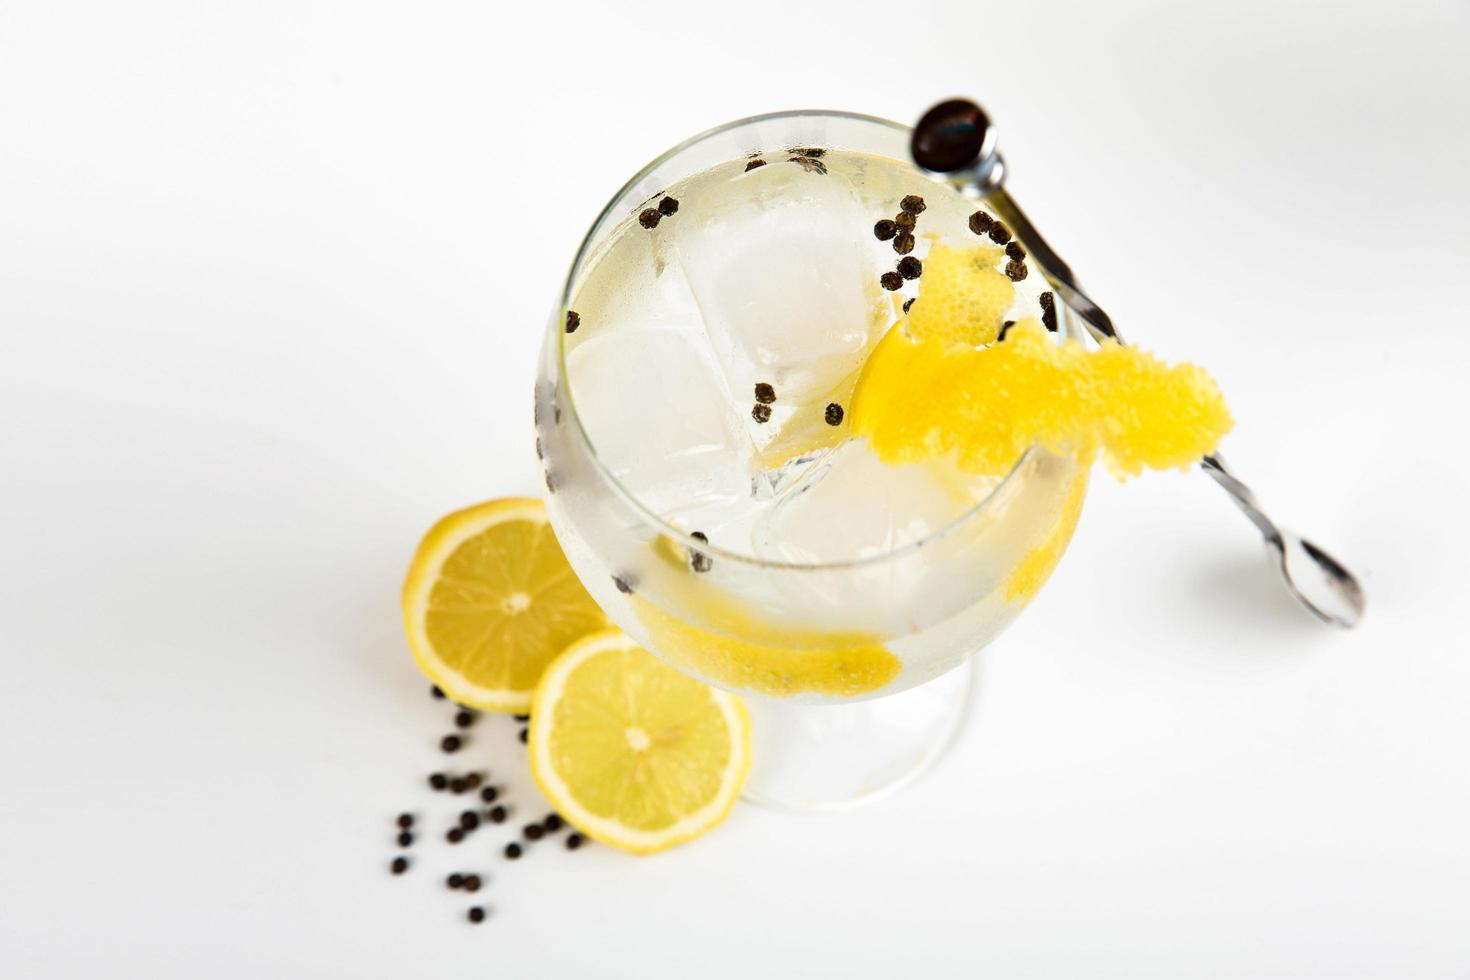 Cocktail with garnish on white background  photo